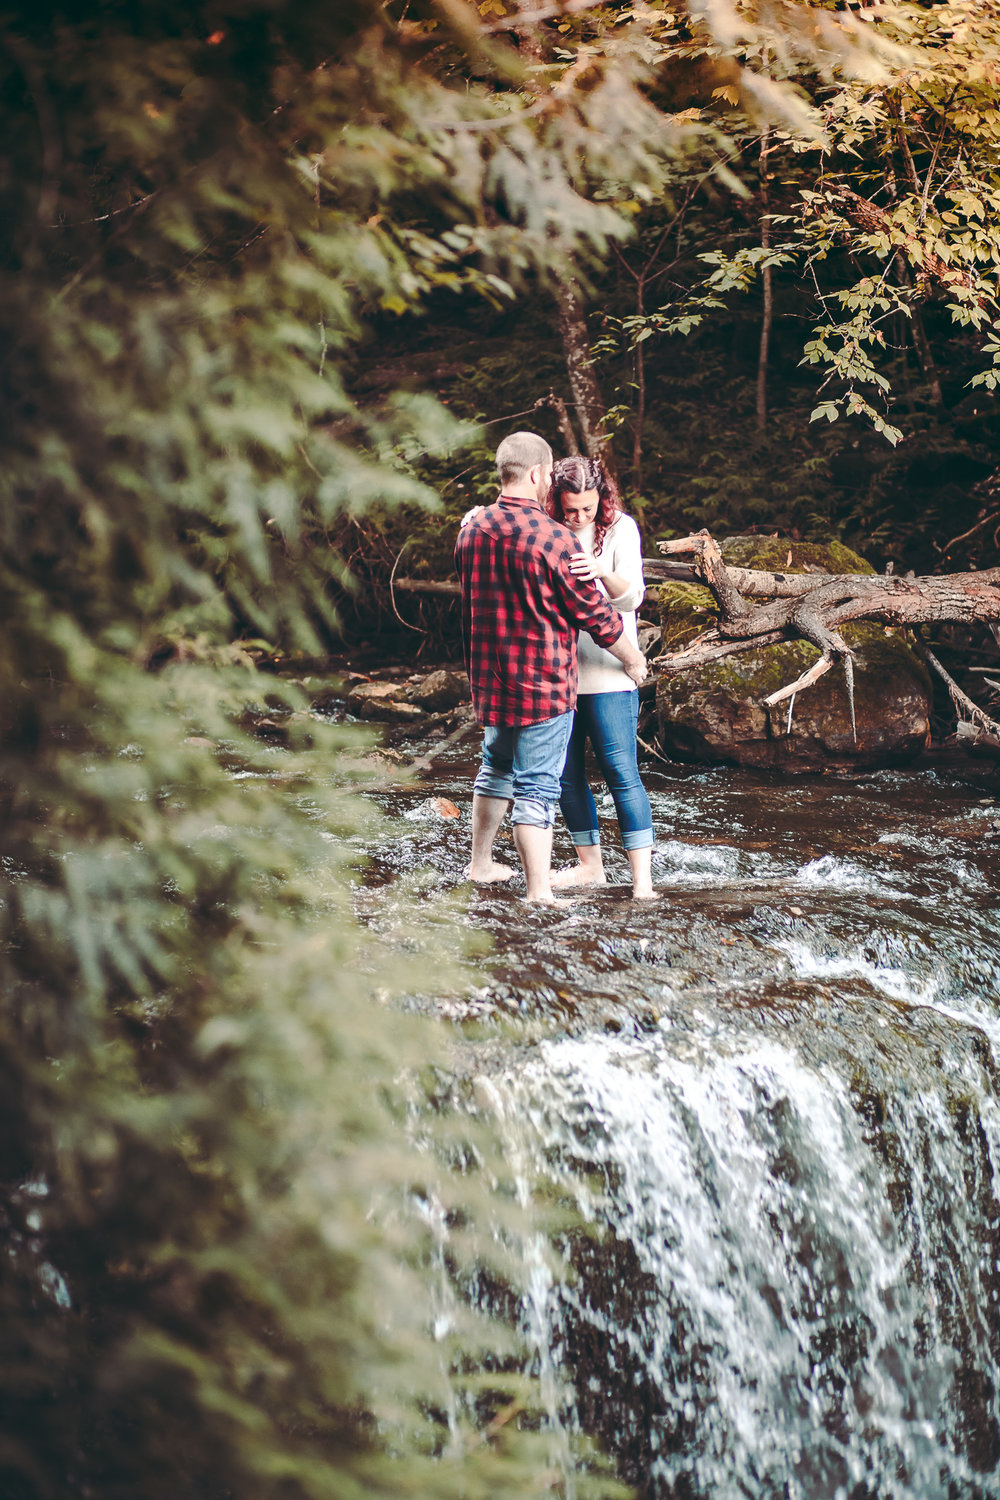 Amy D Photography- Barrie Wedding Photography- Engagement Session- Fall Engagement- Engagement Poses- Barrie Weddings- Wedding Photographer-79.jpg